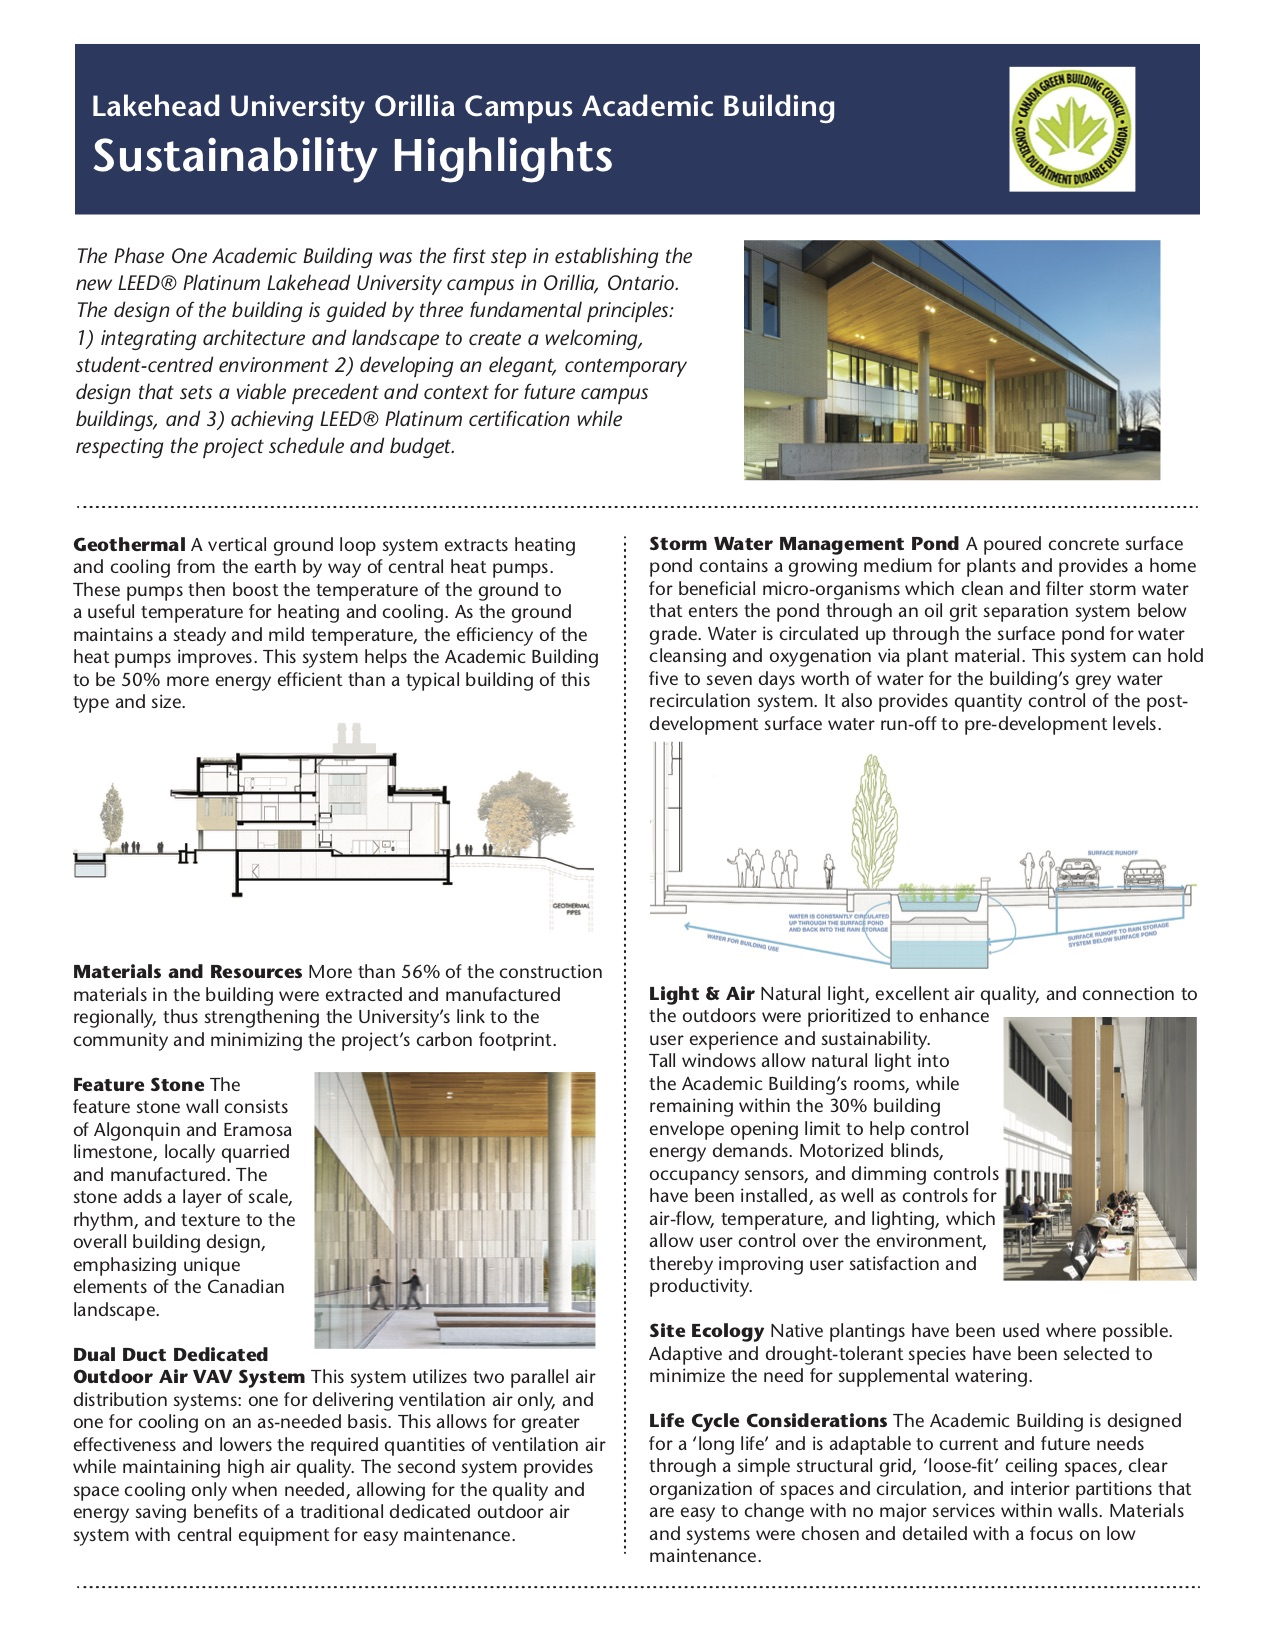 A handout about the LEED Platinum campus in Orillia